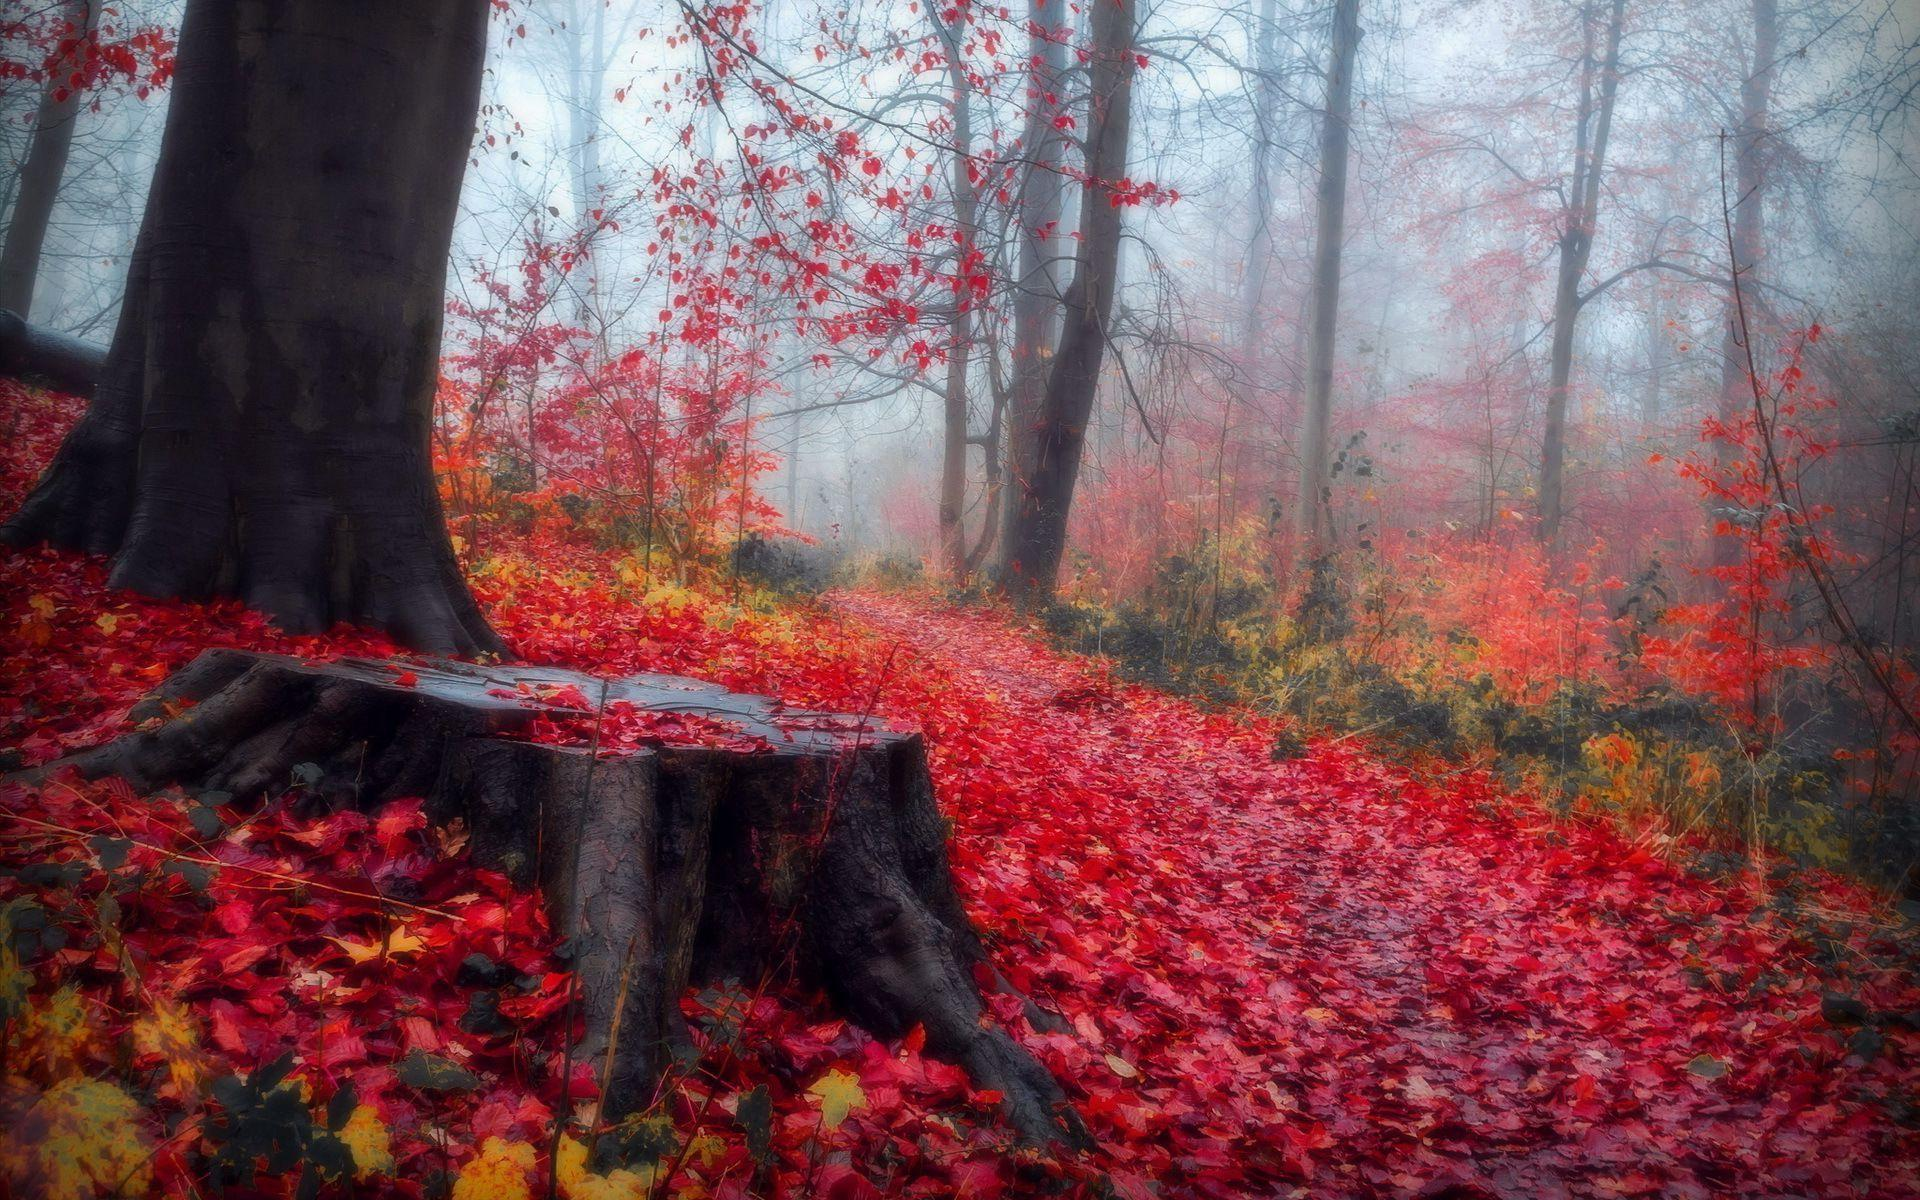 Free Animated Fall Wallpaper Hd Red Leaves In The Autumn Forest Wallpaper Download